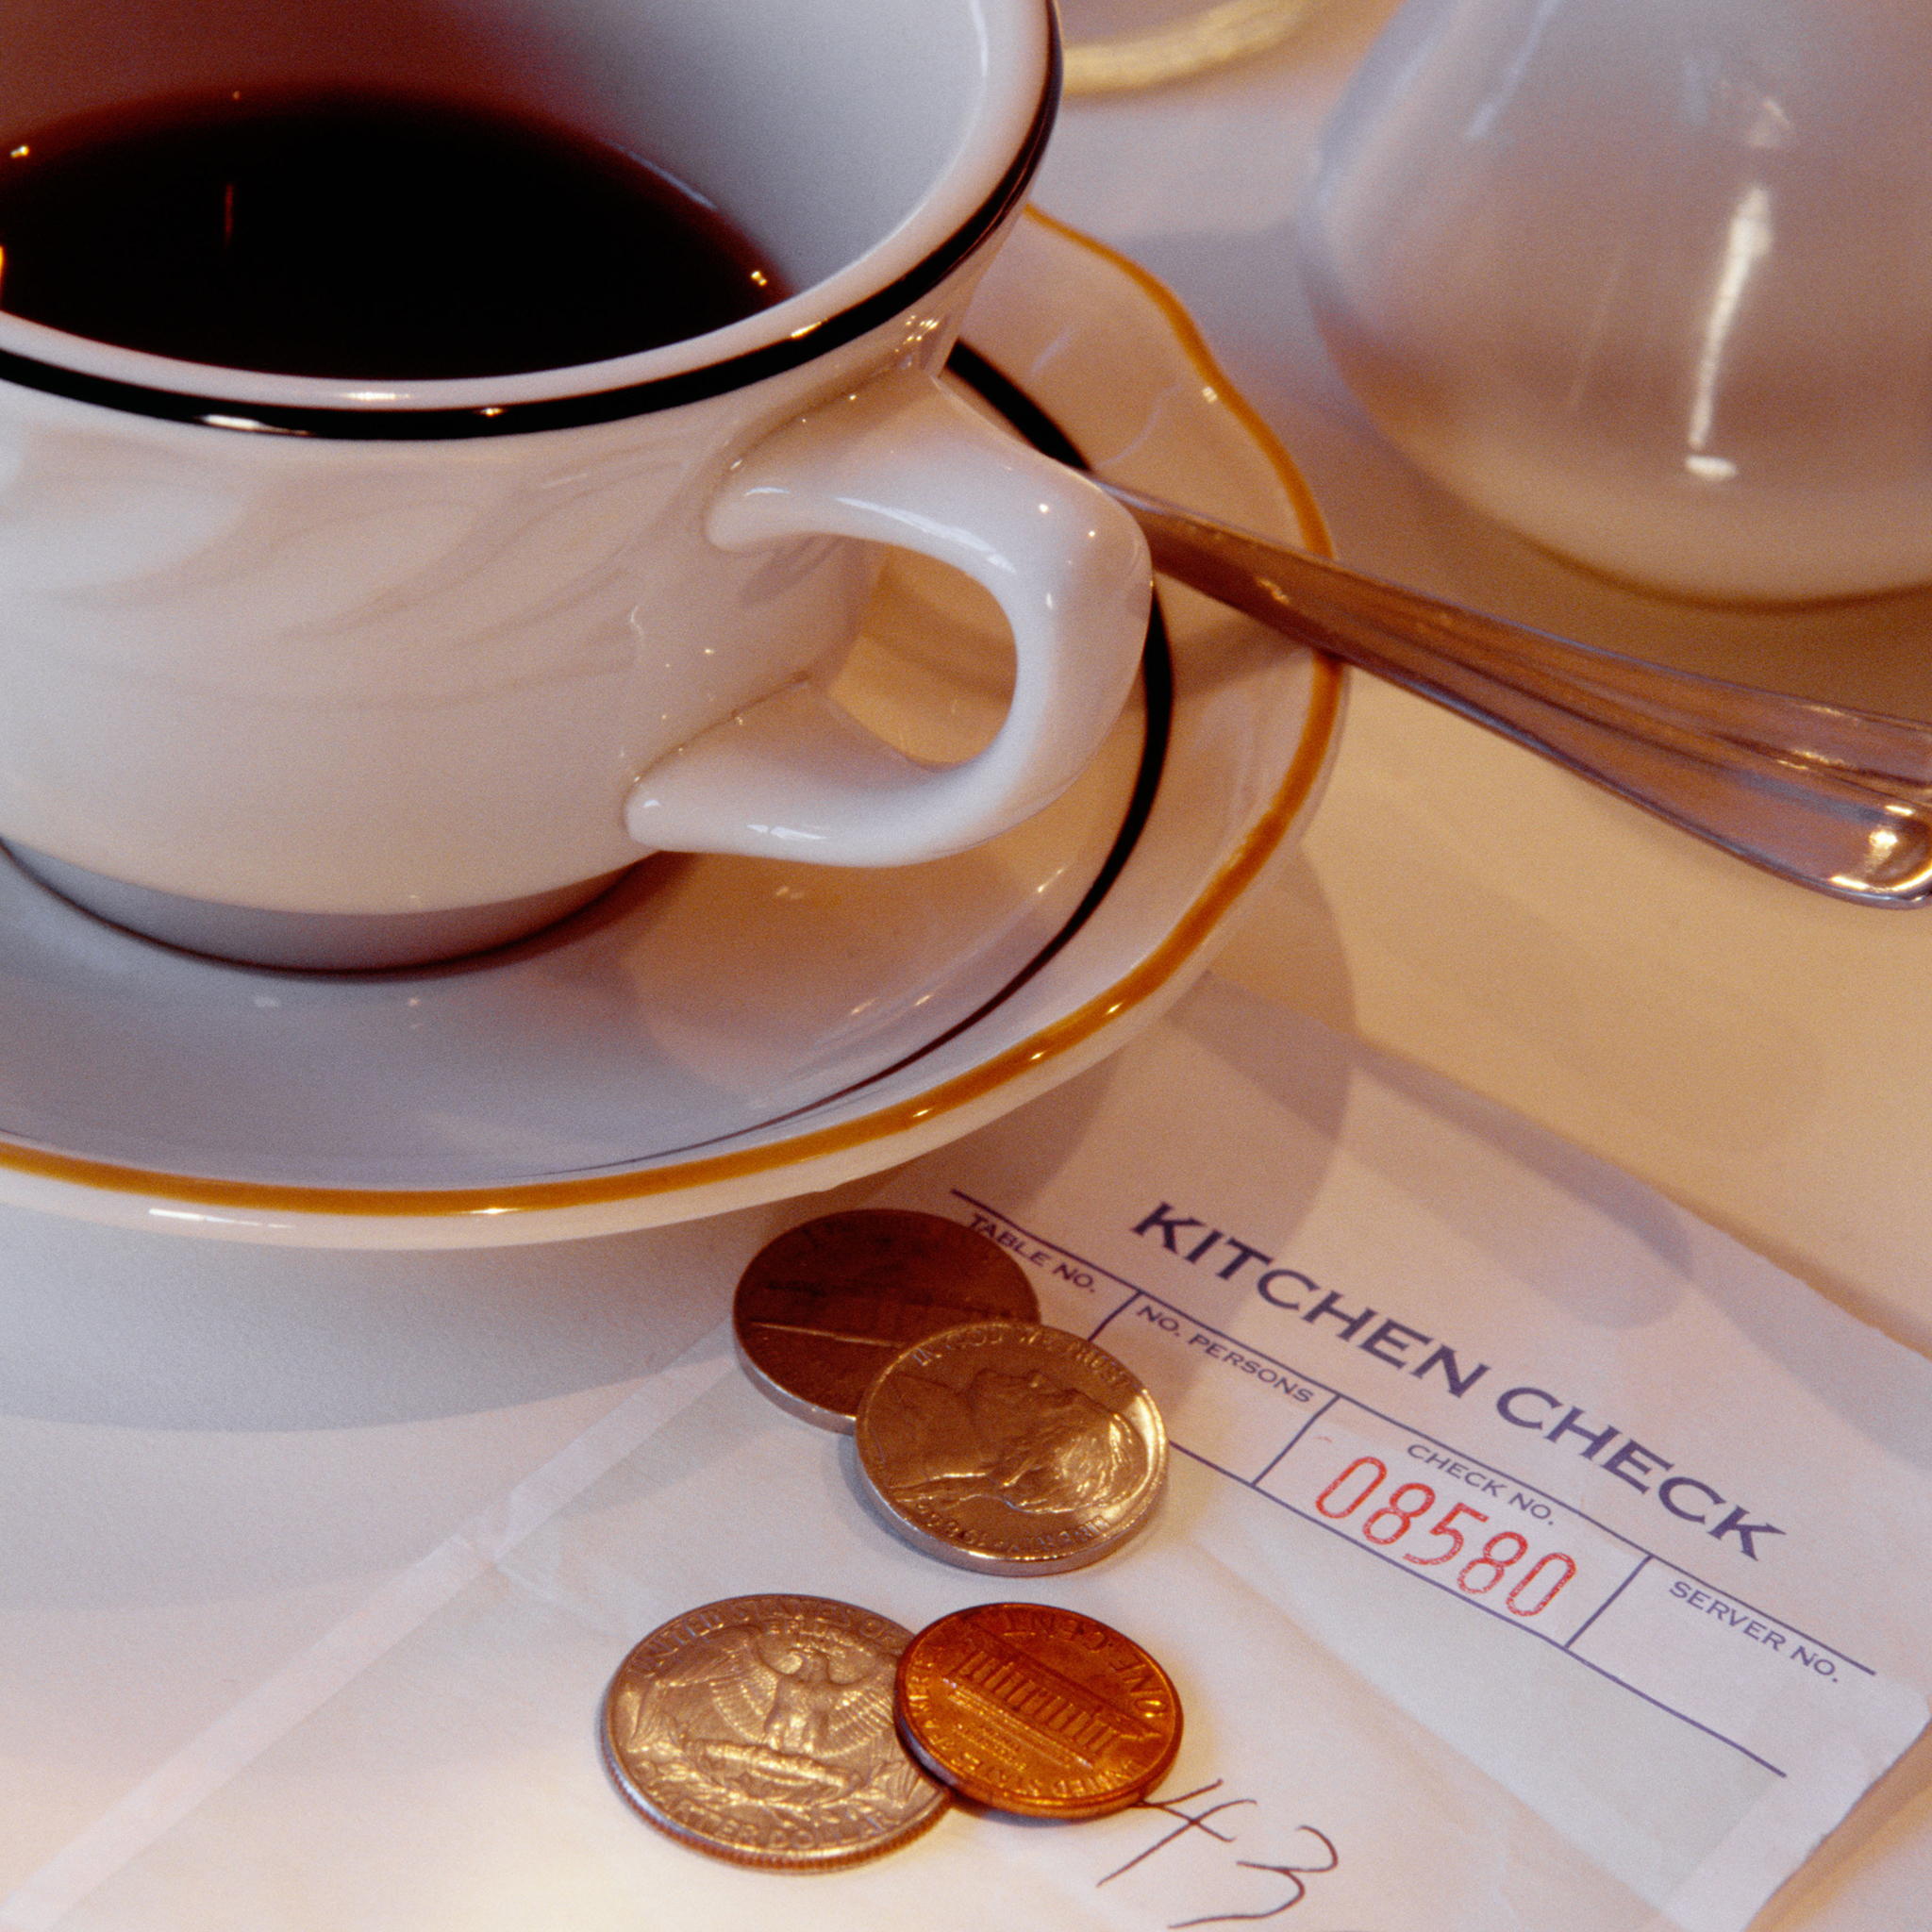 No Tipping Means No Tipping: Massachusetts Court Rules Owners Can Pocket Tips